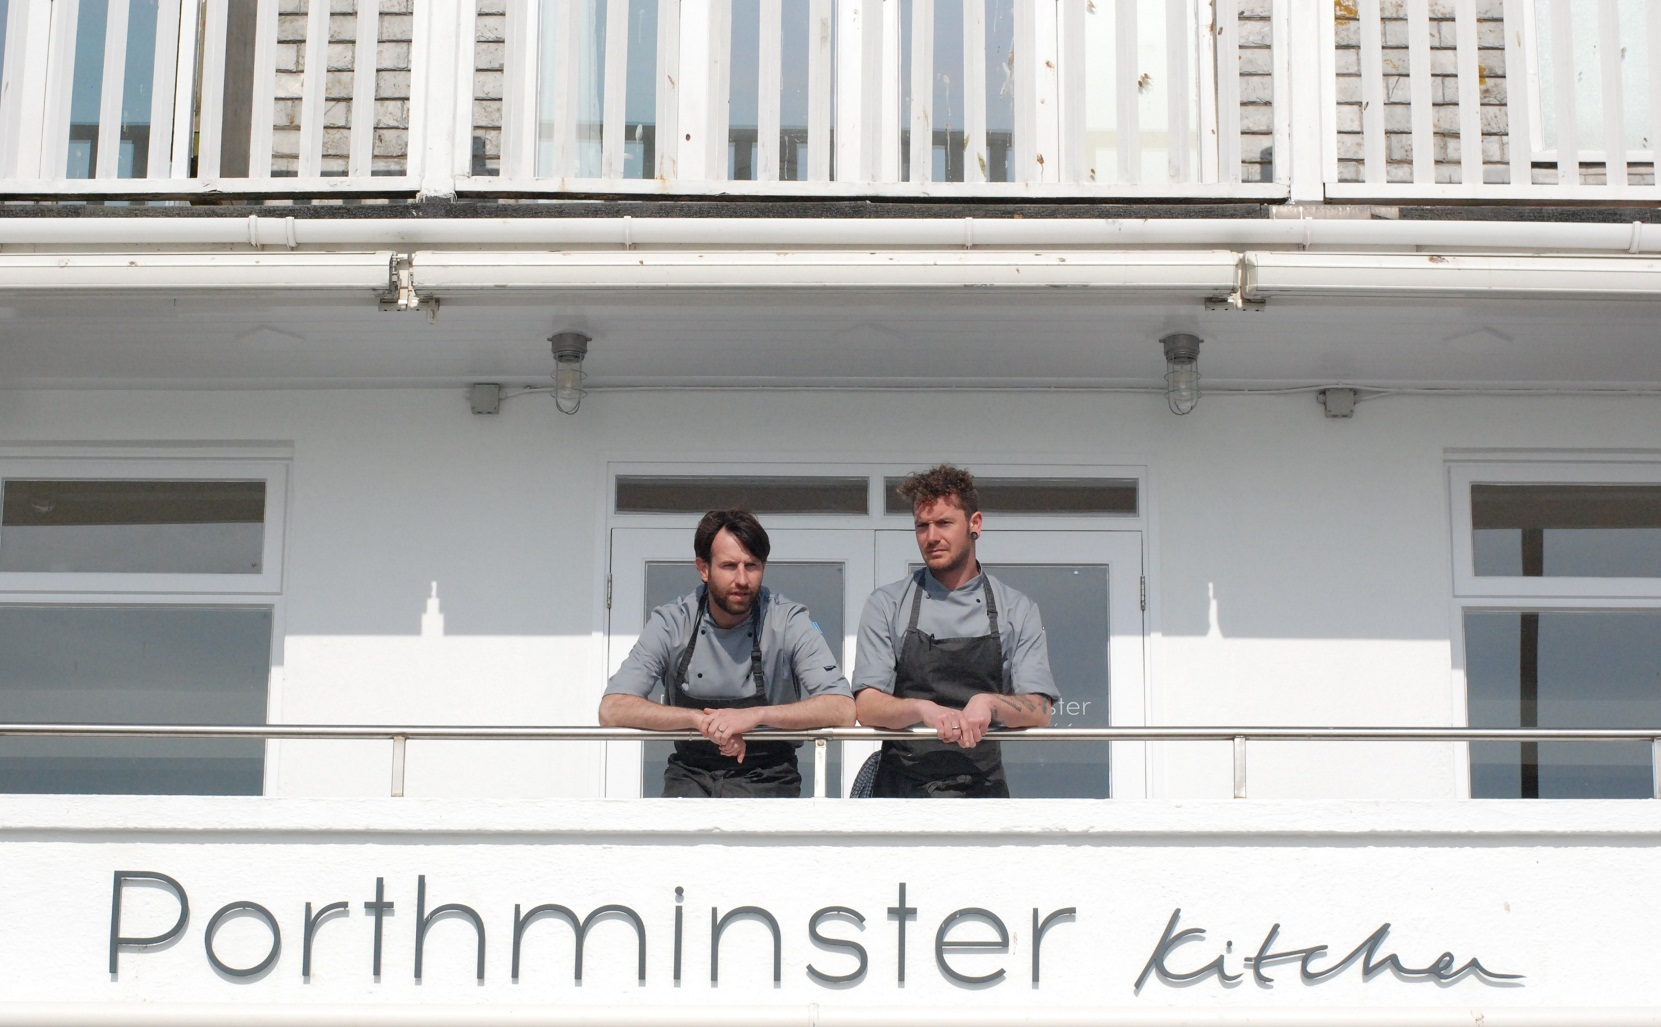 L-R: Michael Smith (executive chef) and Lee Wilson (head chef)